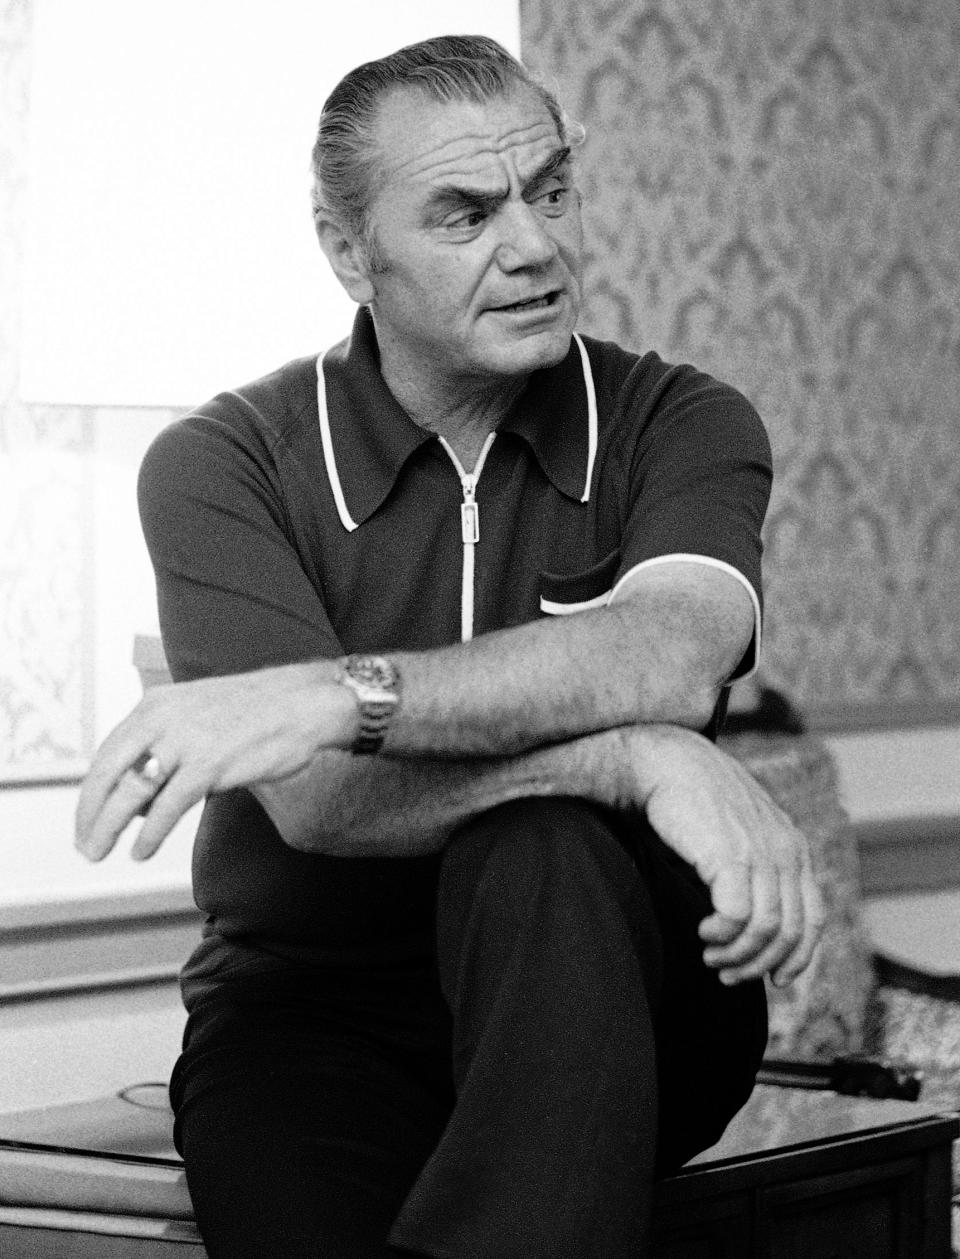 FILE - This June 1, 1973, file photo, shows Ernest Borgnine in New York. A spokesman said Sunday, July 8, 2012, that Borgnine has died at the age of 95. (AP Photo/Jerry Mosey, File)